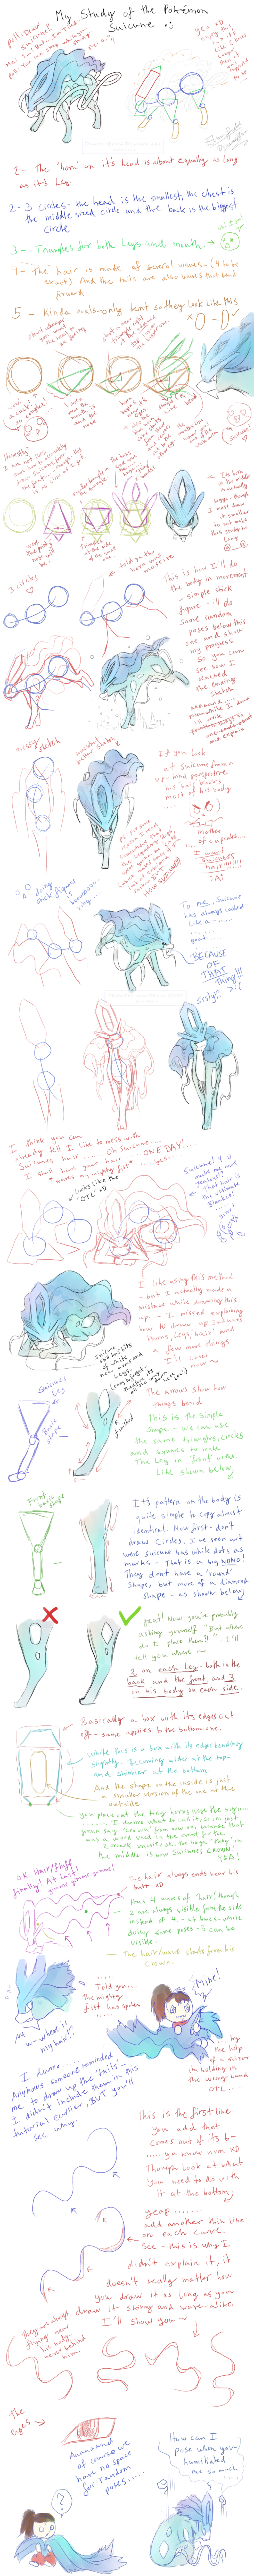 How to Draw Suicune- DrawerElma's Study by DrawerElma